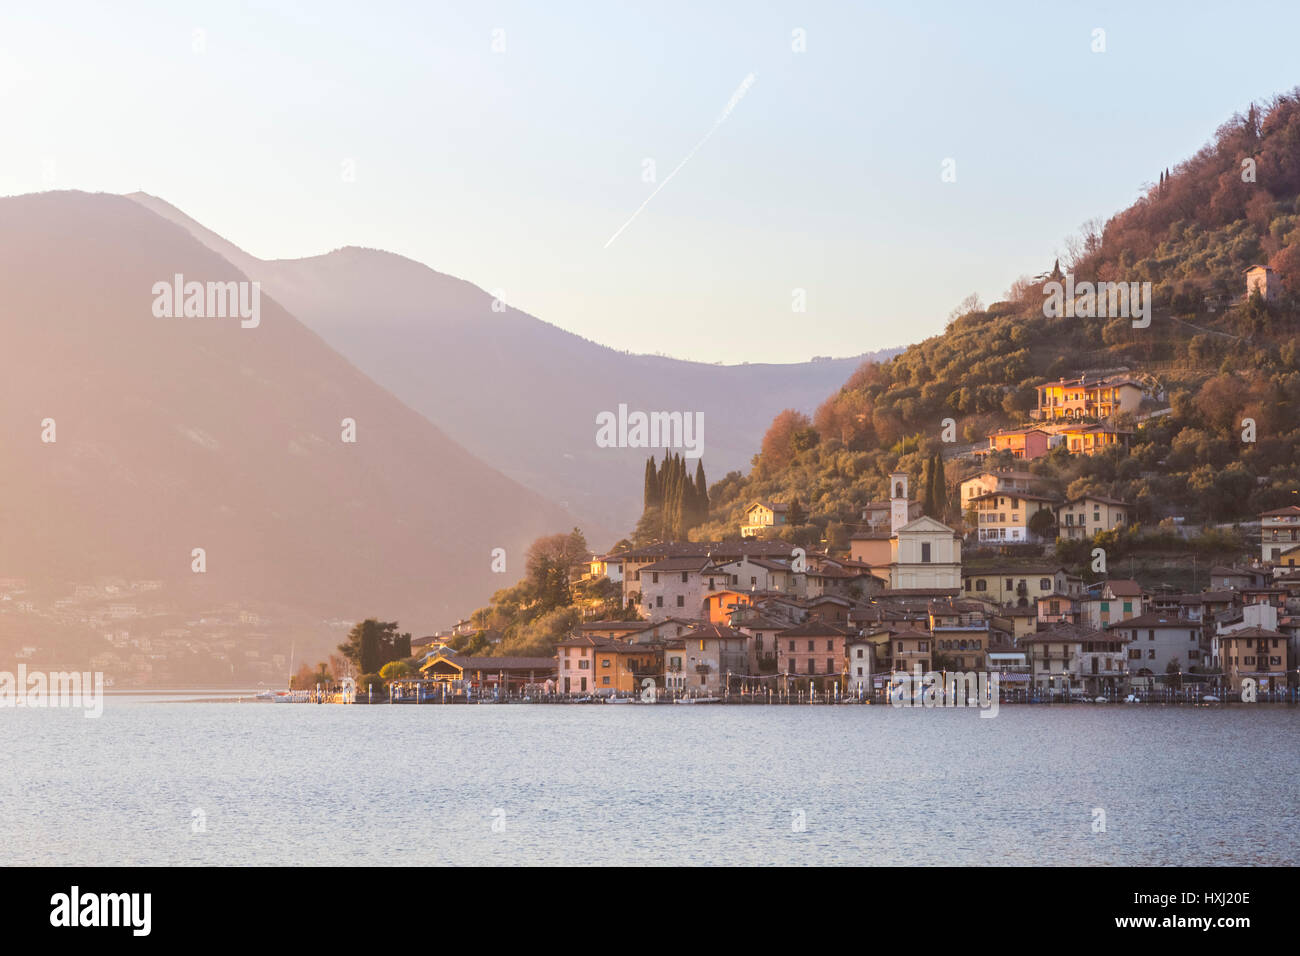 The town of Peschiera Maraglio during a winter sunset, Brescia Province, Iseo Lake, Lombardy, Italy. - Stock Image